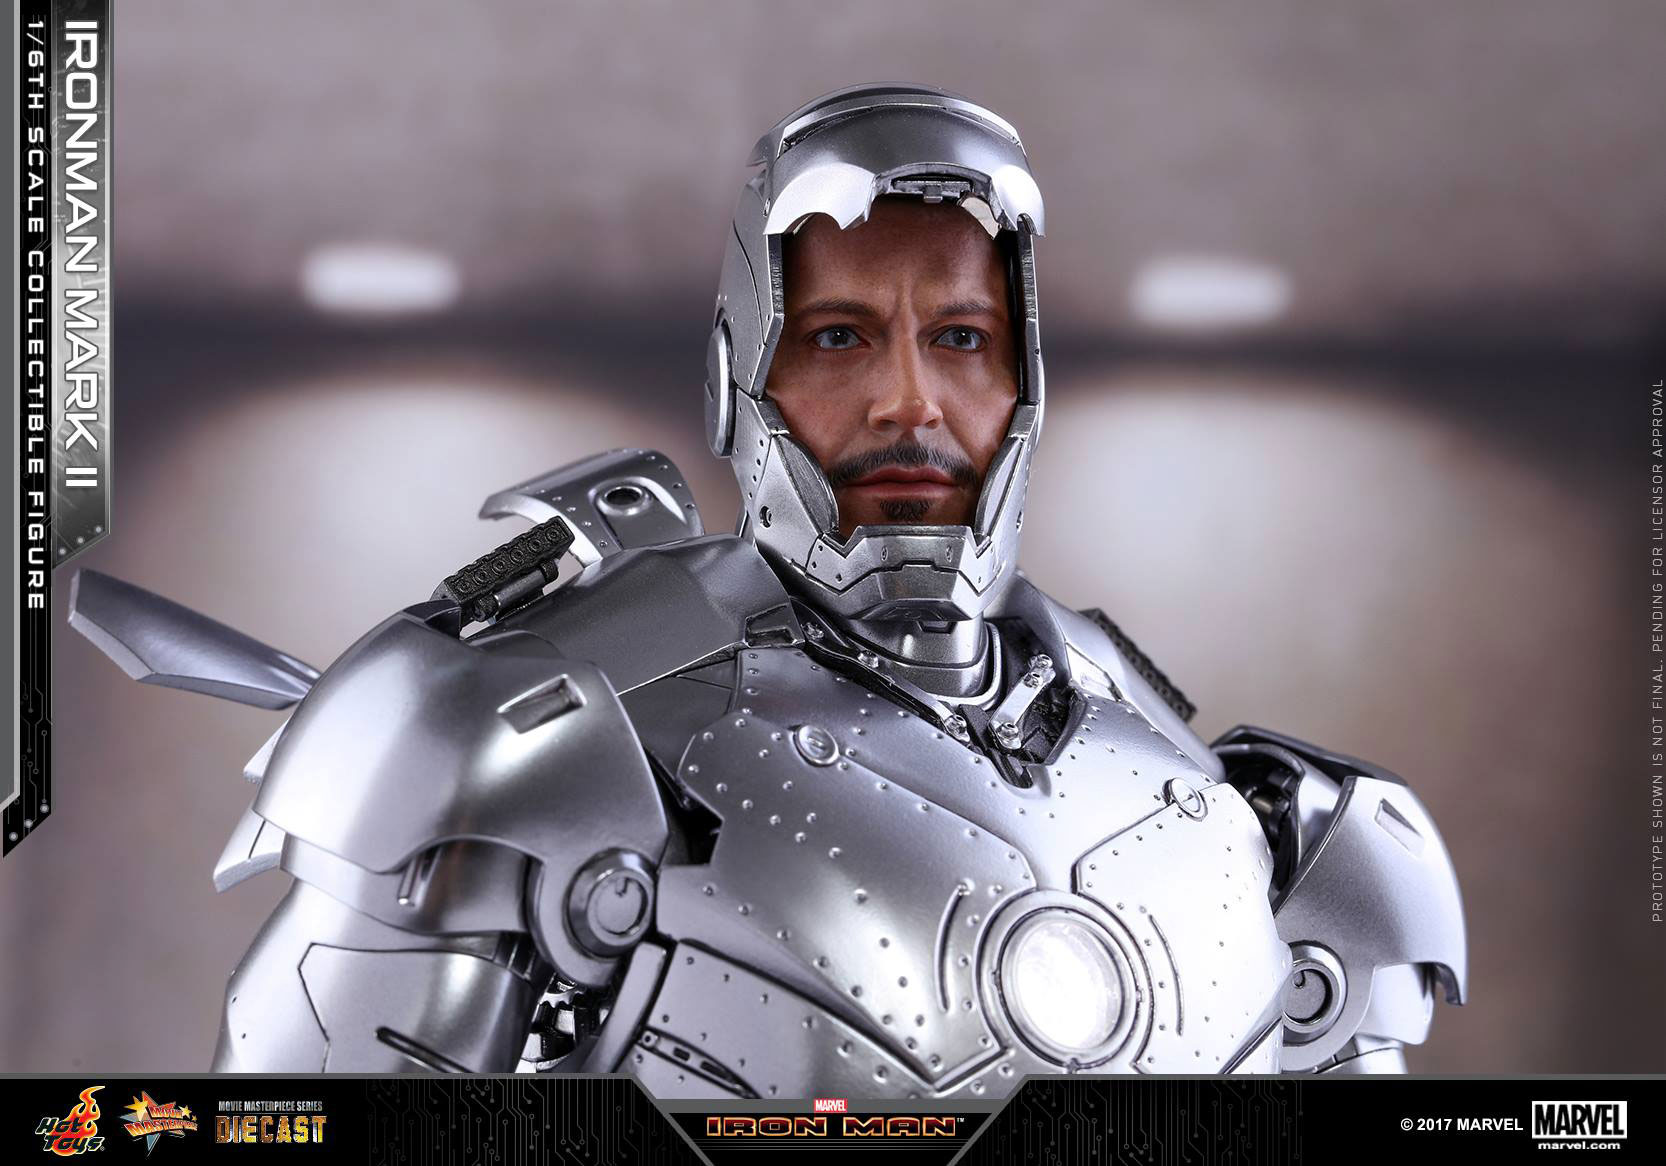 iron-man-mark-2-diecast-silver-hot-toys-figure-3